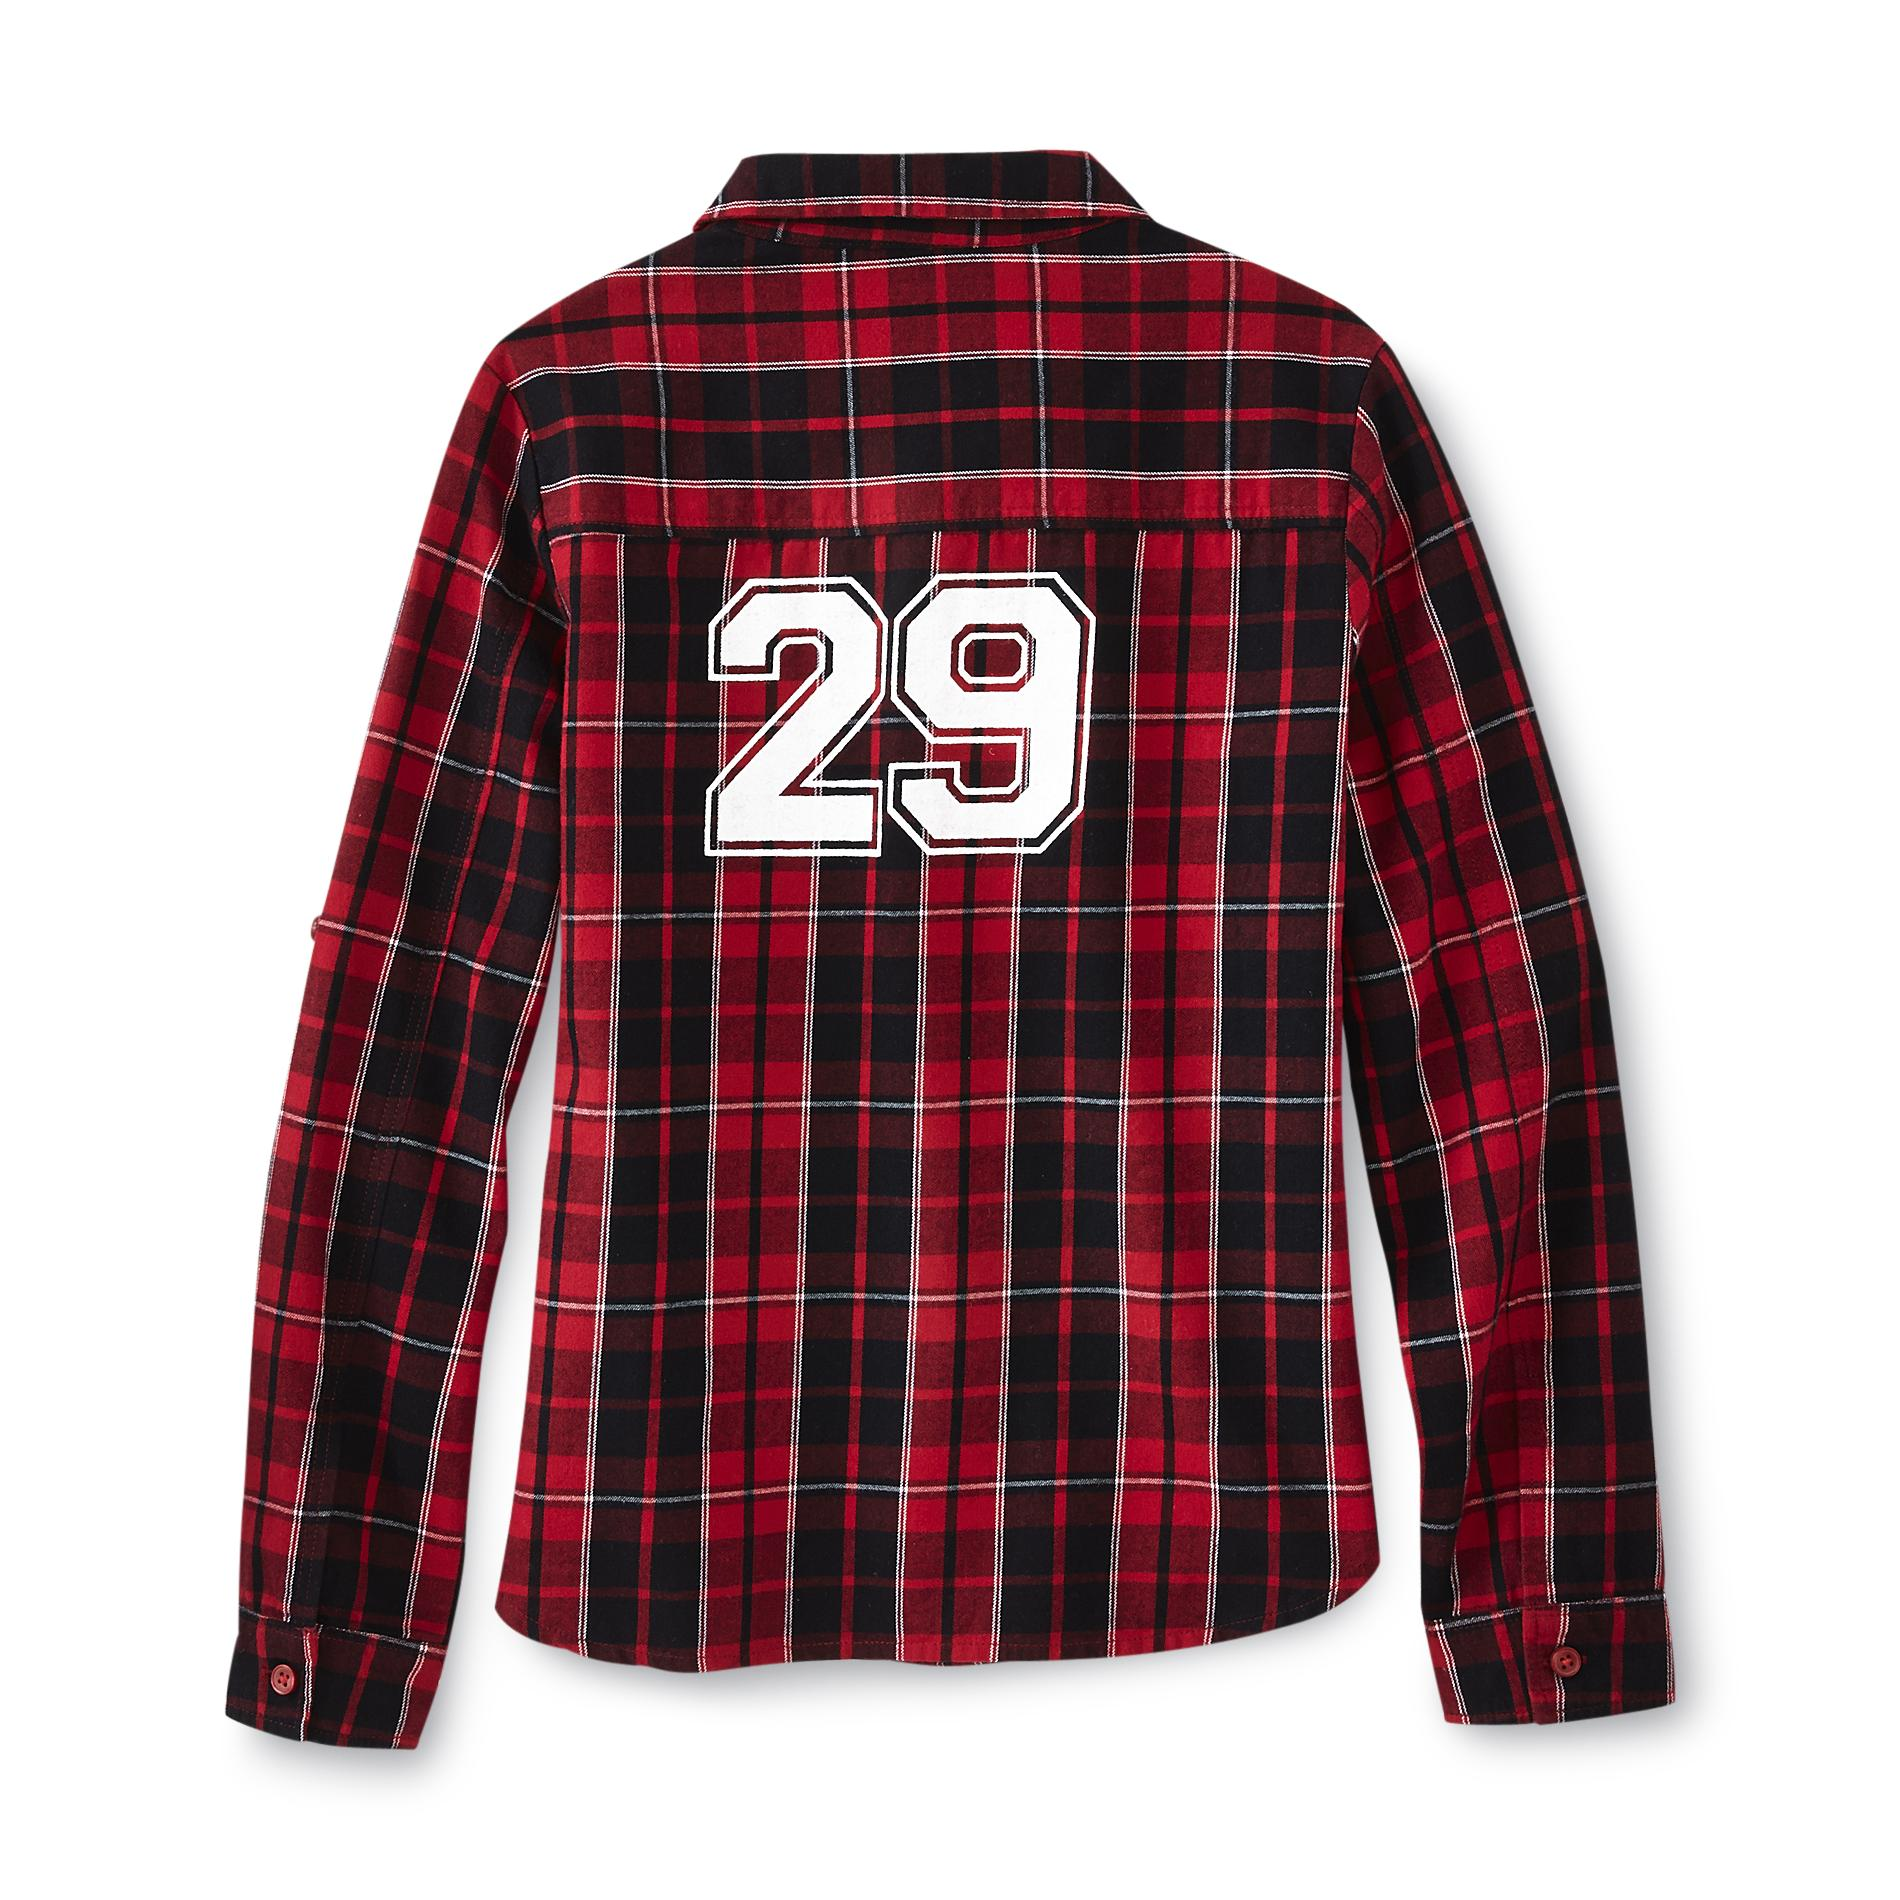 Route 66 Girl's Graphic Flannel Shirt - Plaid